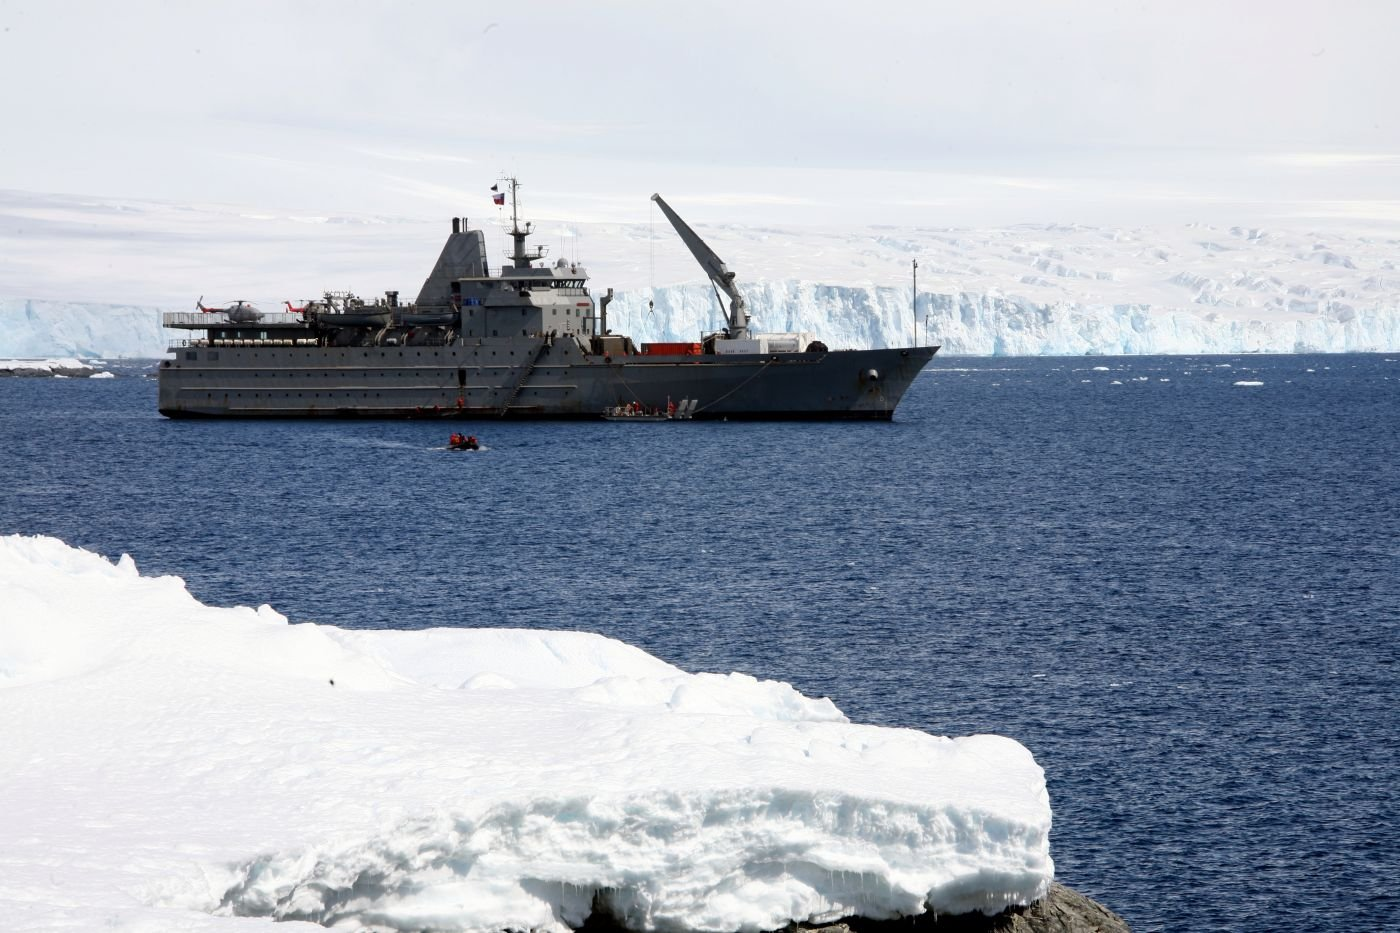 Chilean Armed Forces Support Scientific Research in Antarctica